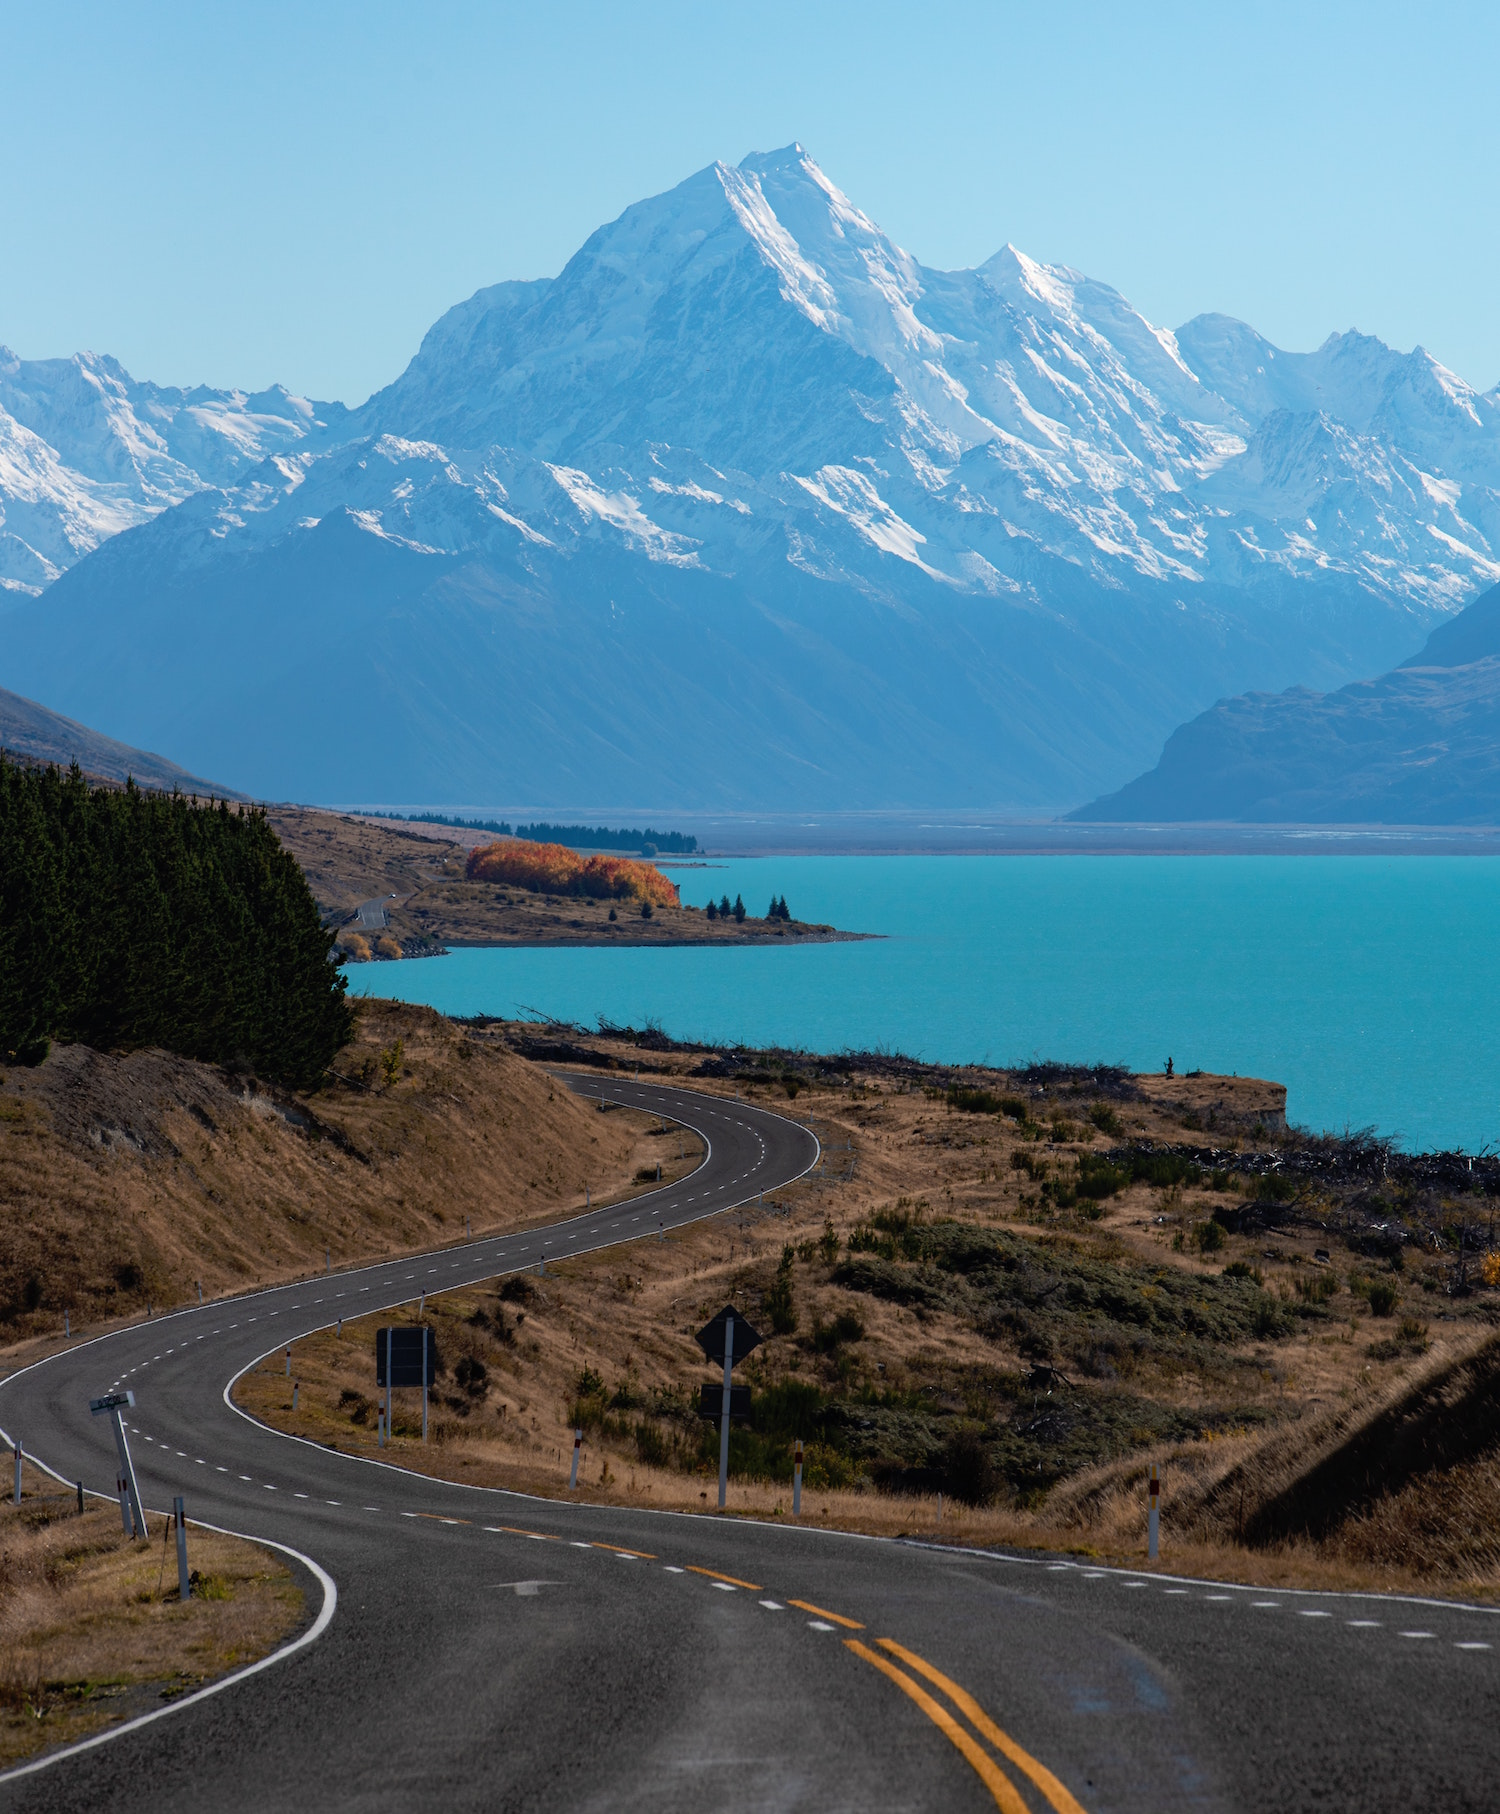 A road snakes it way down to Lake Pukaki with snowcapped mountains in the distance.